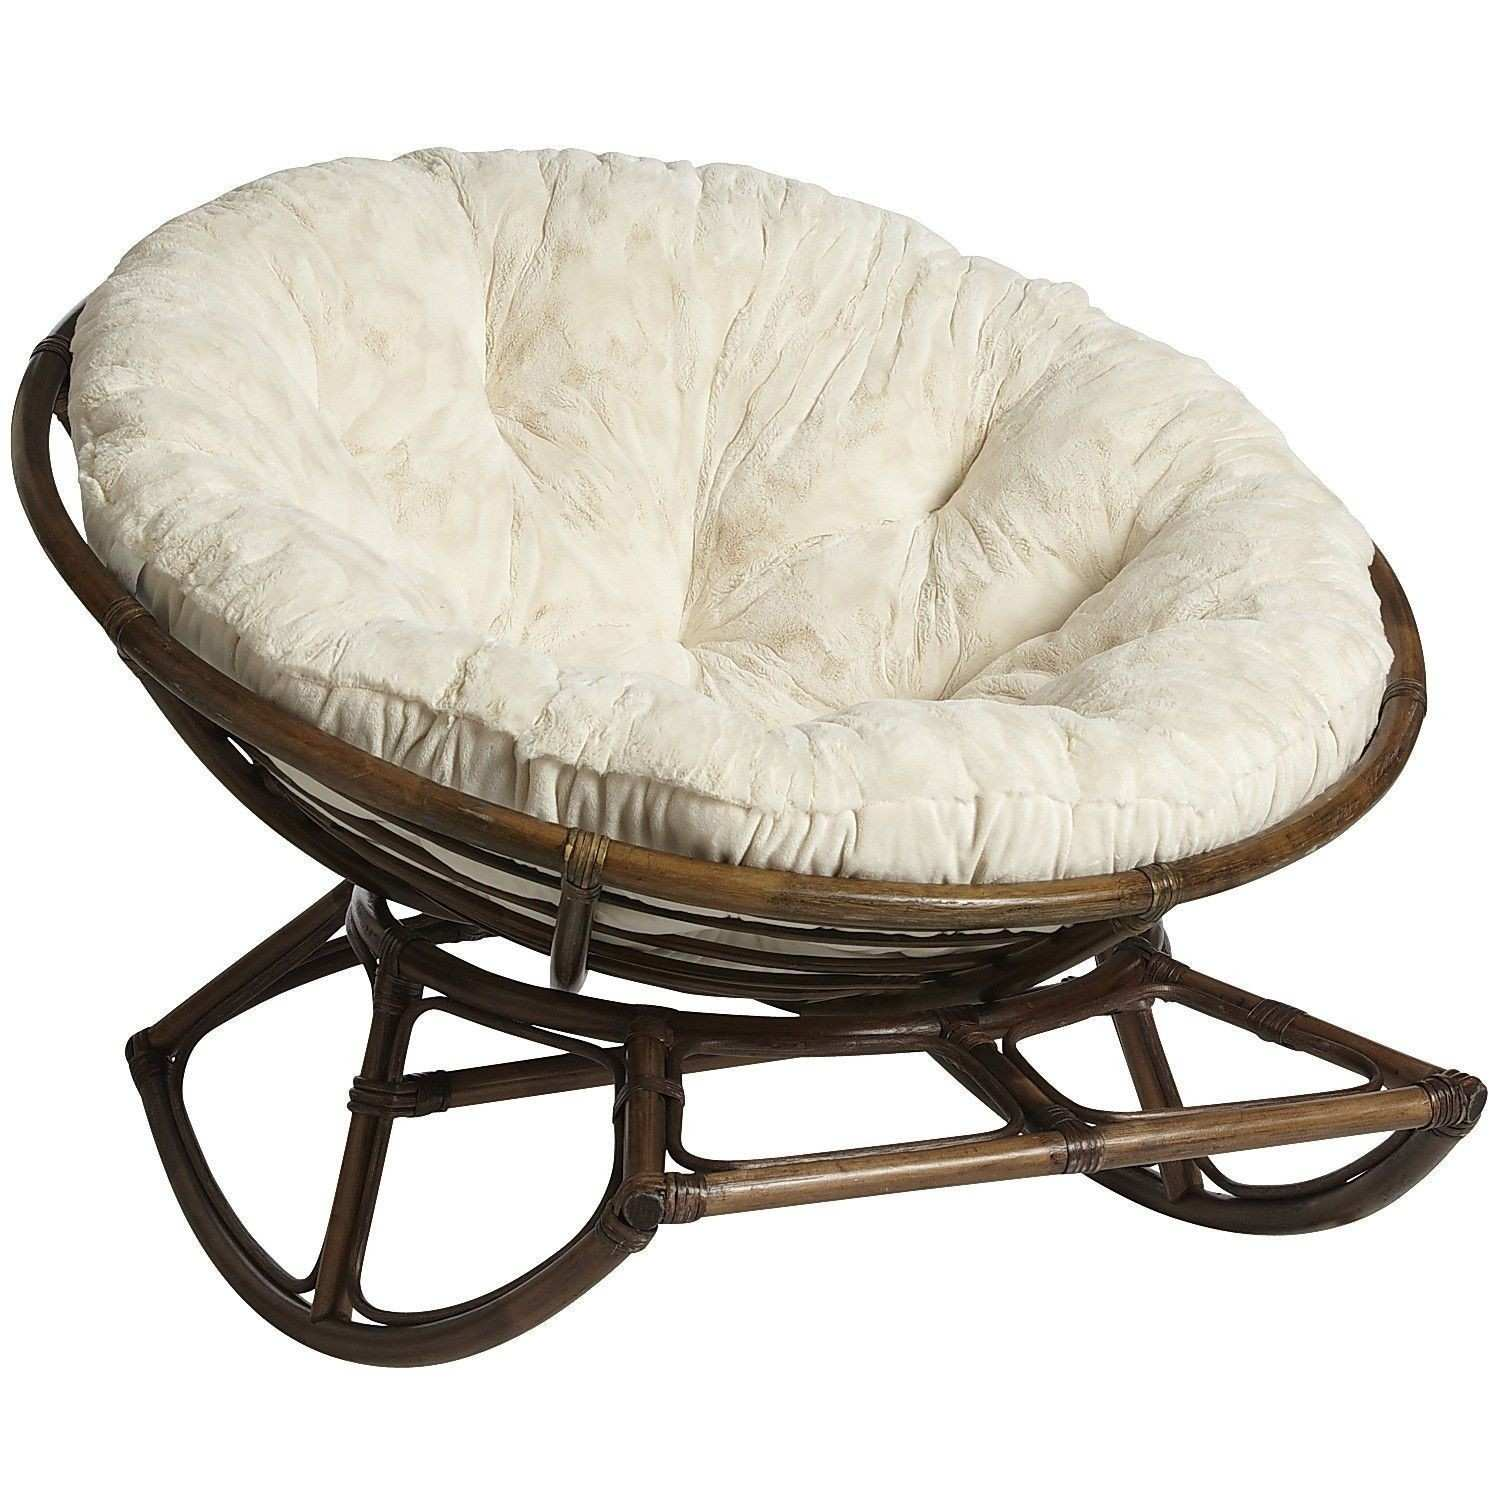 Chairs Frame Lovely Papasan Chair Frame Clear Wicker Outdoor sofa 0d